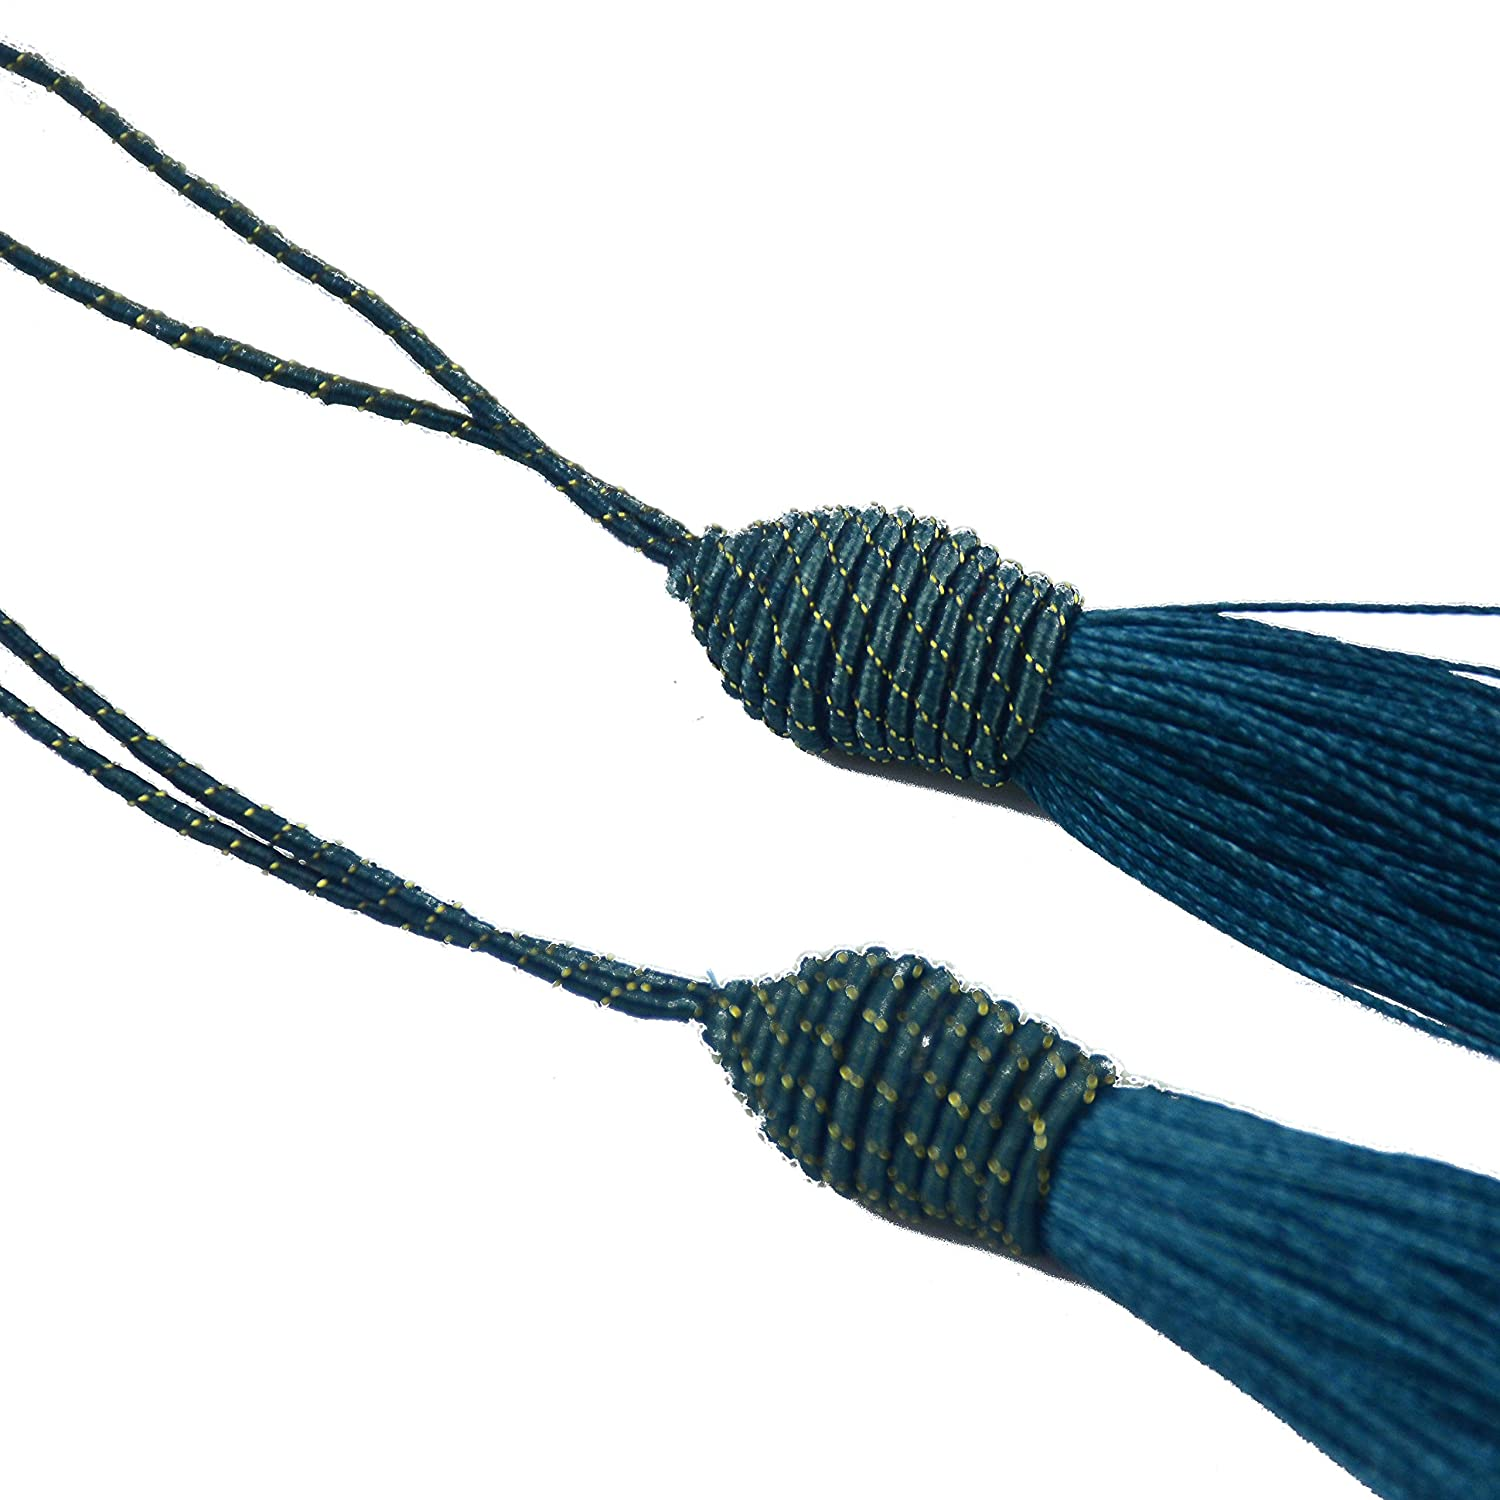 Makhry 20pcs 15.5cm//6 Inch Silky Floss Bookmark Tassels with 2-Inch Cord Loop and Small Chinese Knot for Jewelry Making Bookmarks Souvenir Dark Blue DIY Craft Accessory